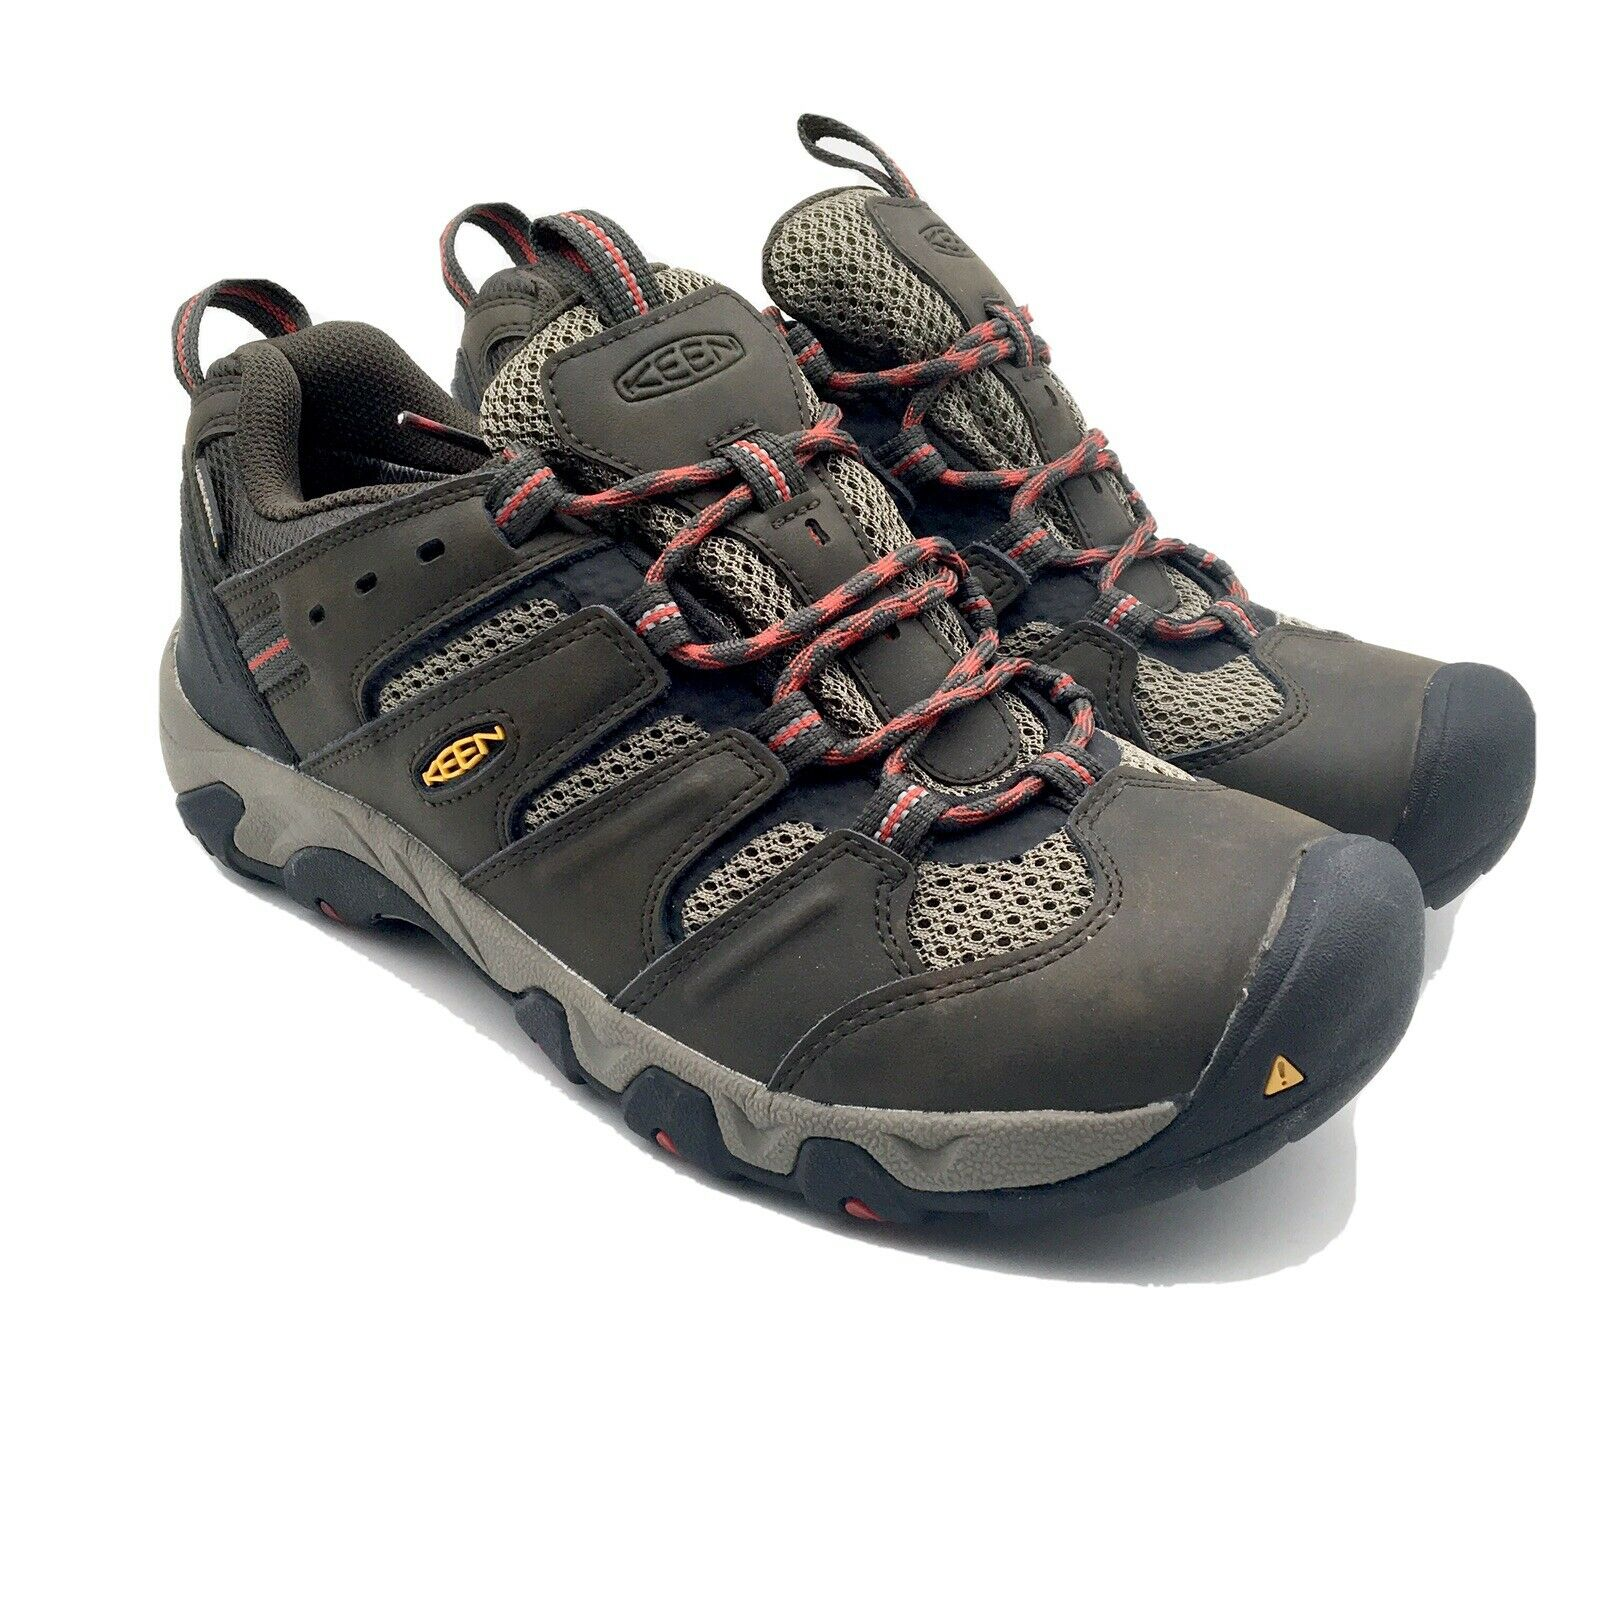 keen low top hiking shoes